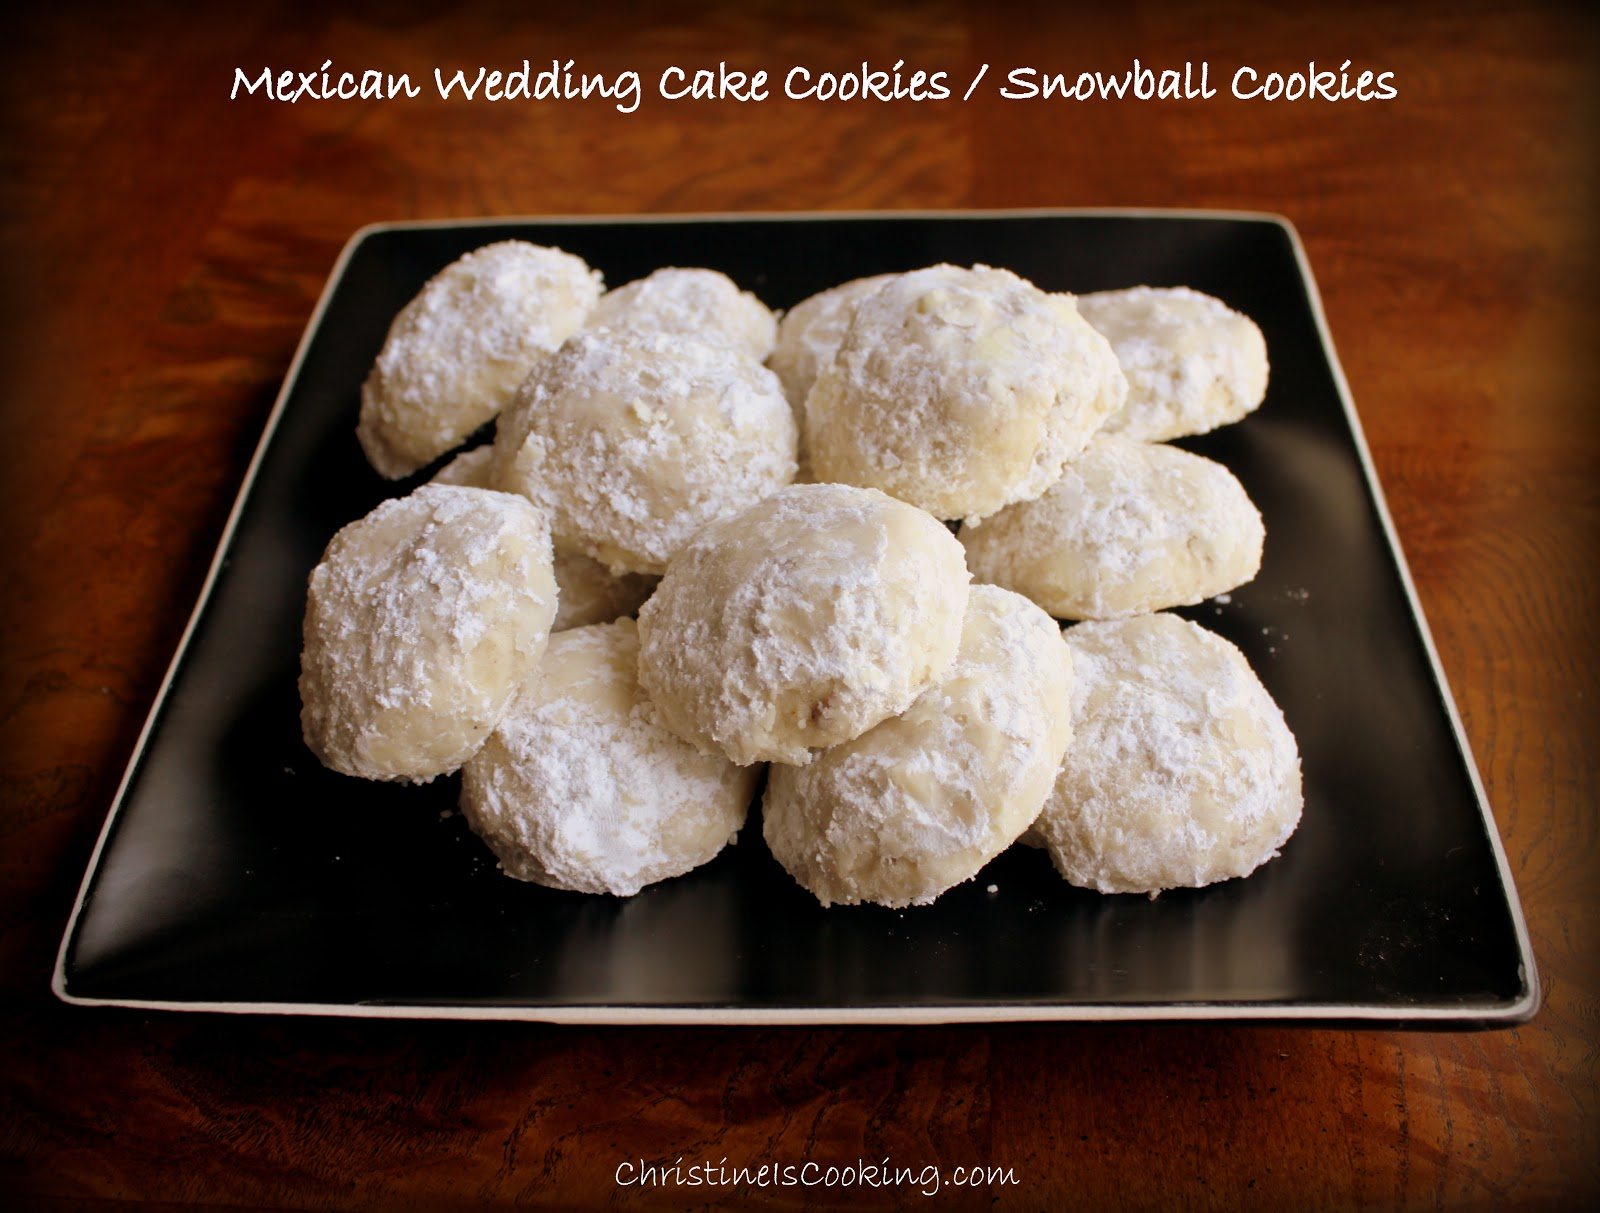 christineiscooking com  Mexican Wedding Cake Cookies   Snowball Cookies Many variations of this recipe exist  however  I prefer this one  The  cookies are baked at a very low heat and that keeps the cookie delicate